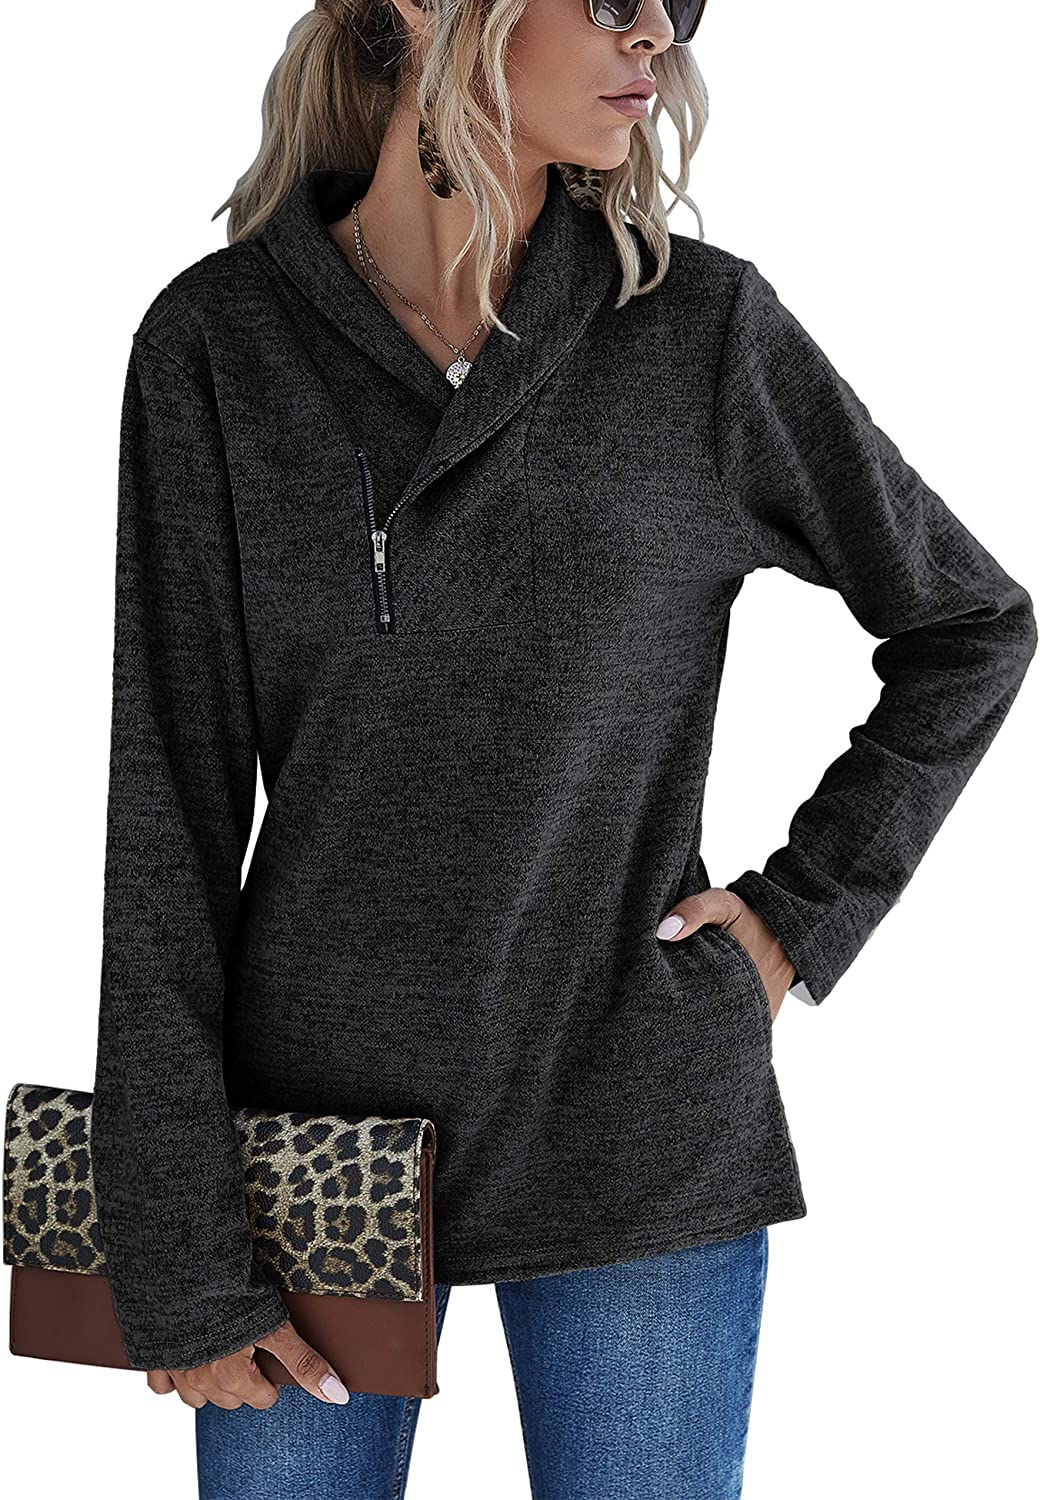 Romanstii Cowl Neck Sweatshirts for Women - Casual Cute Long Sleeve Sweaters, Zip Pullover Shirts Blouses Tops with Pockets